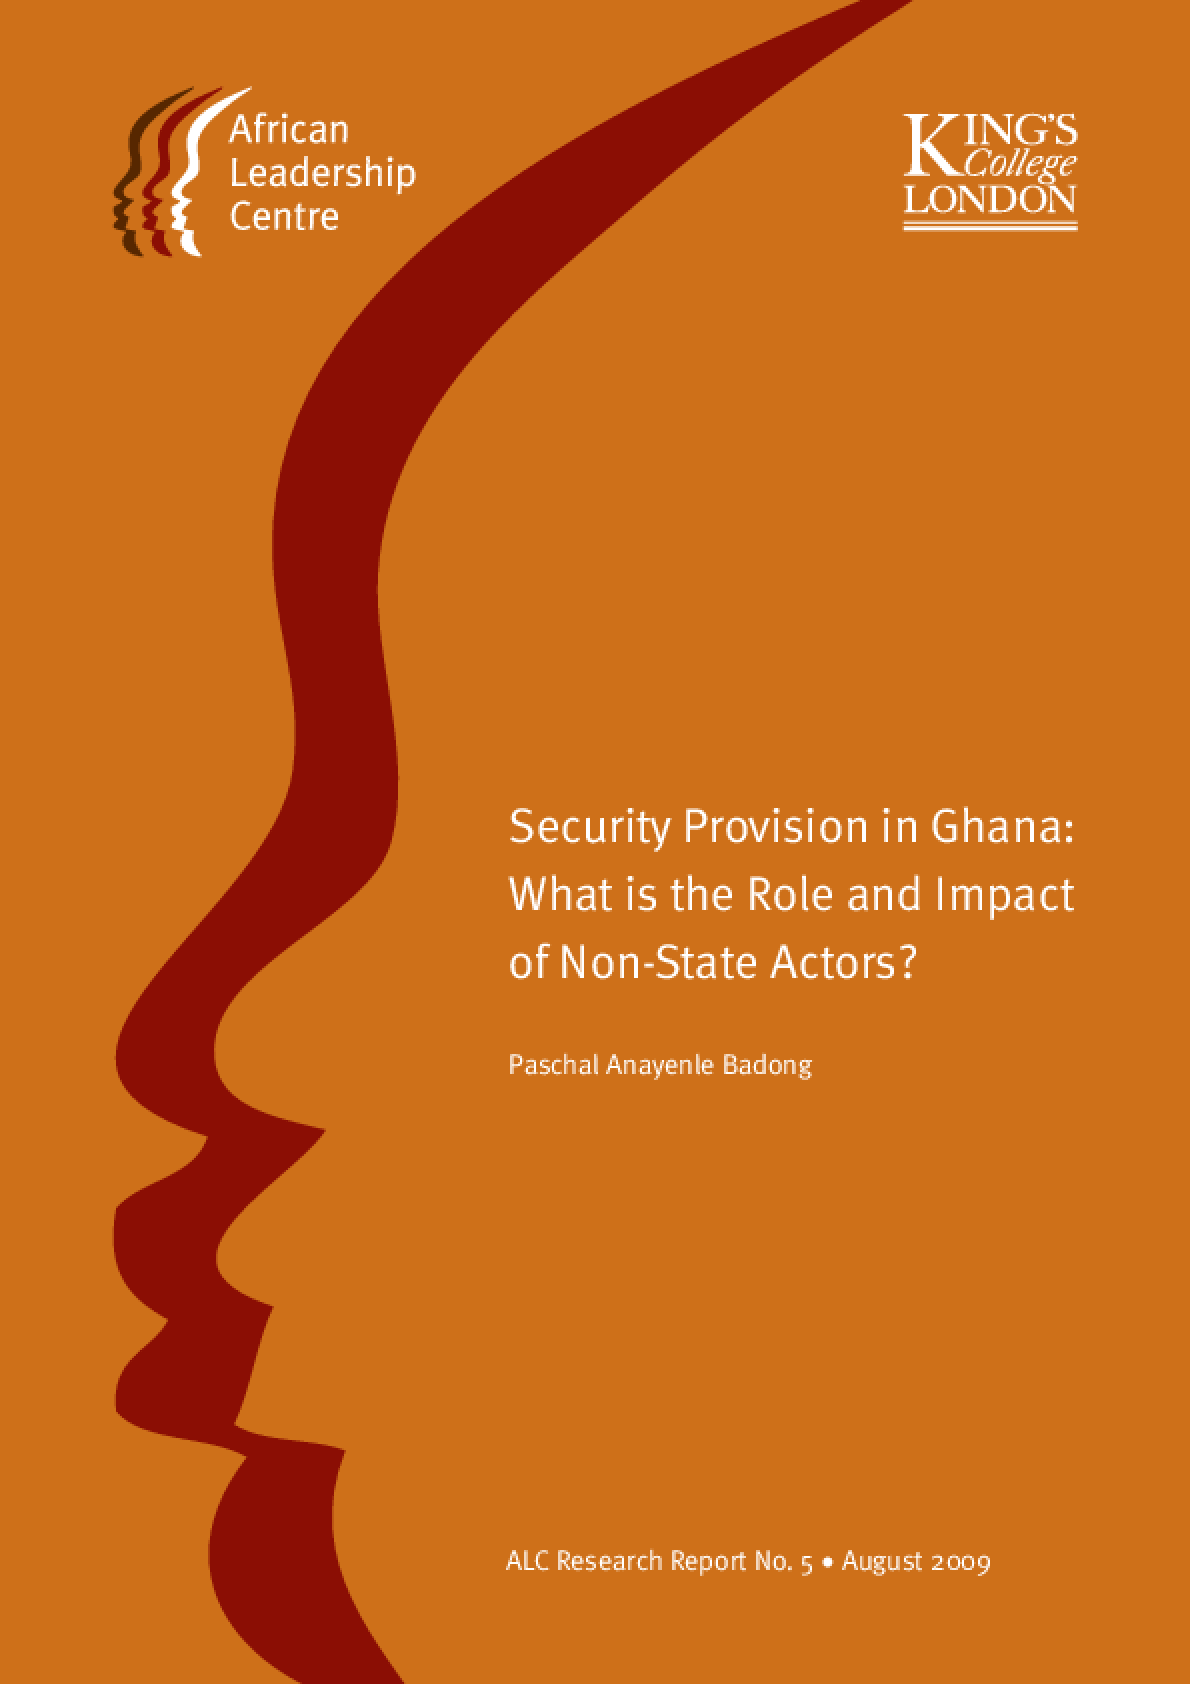 Security Provision in Ghana: What is the Role and Impact of Non-State Actors?